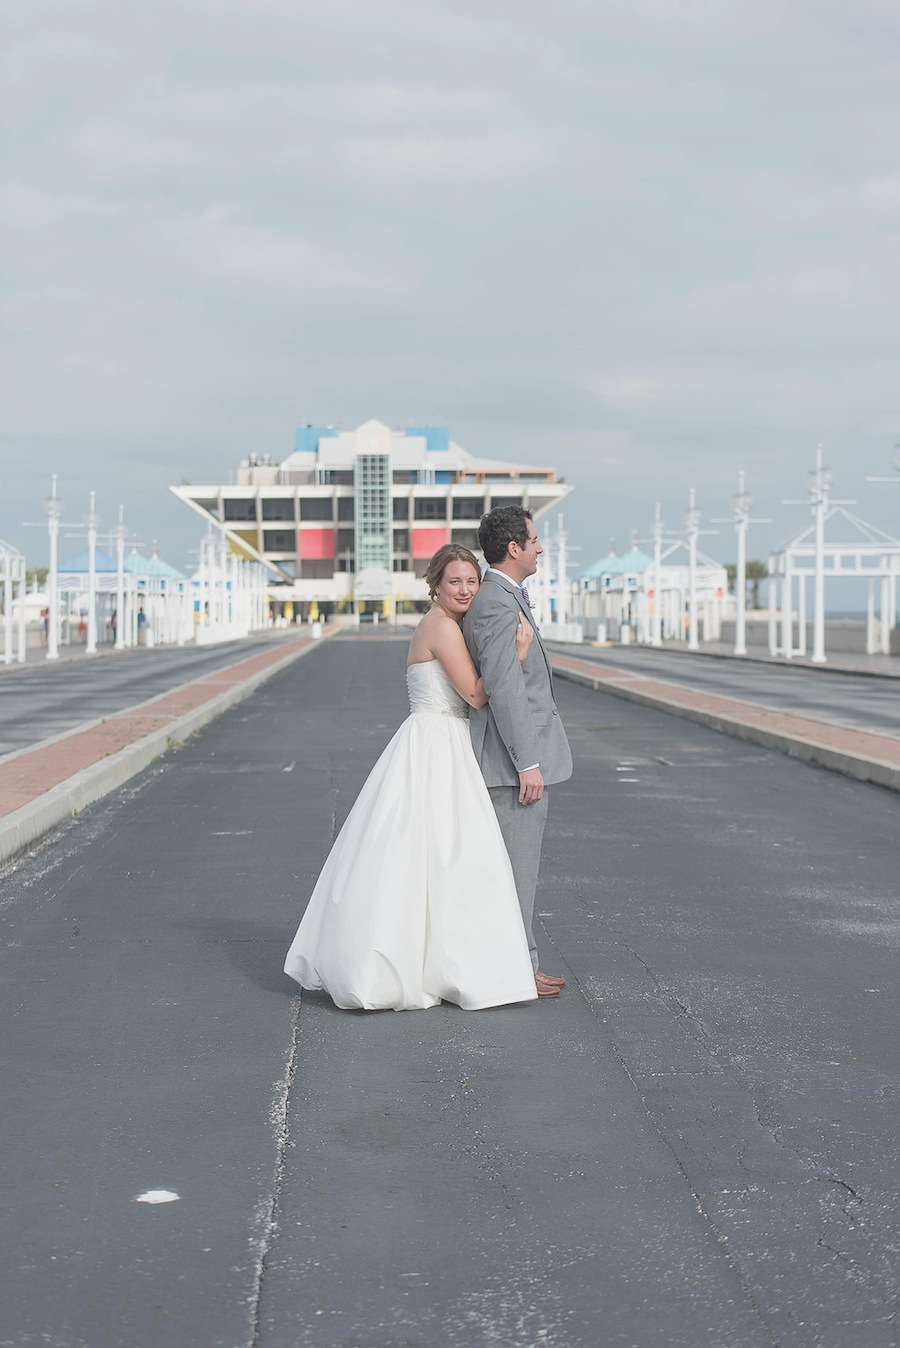 Bride and Groom Portrait in Downtown St. Pete at The Pier on Wedding Day   Kristen Marie Photography